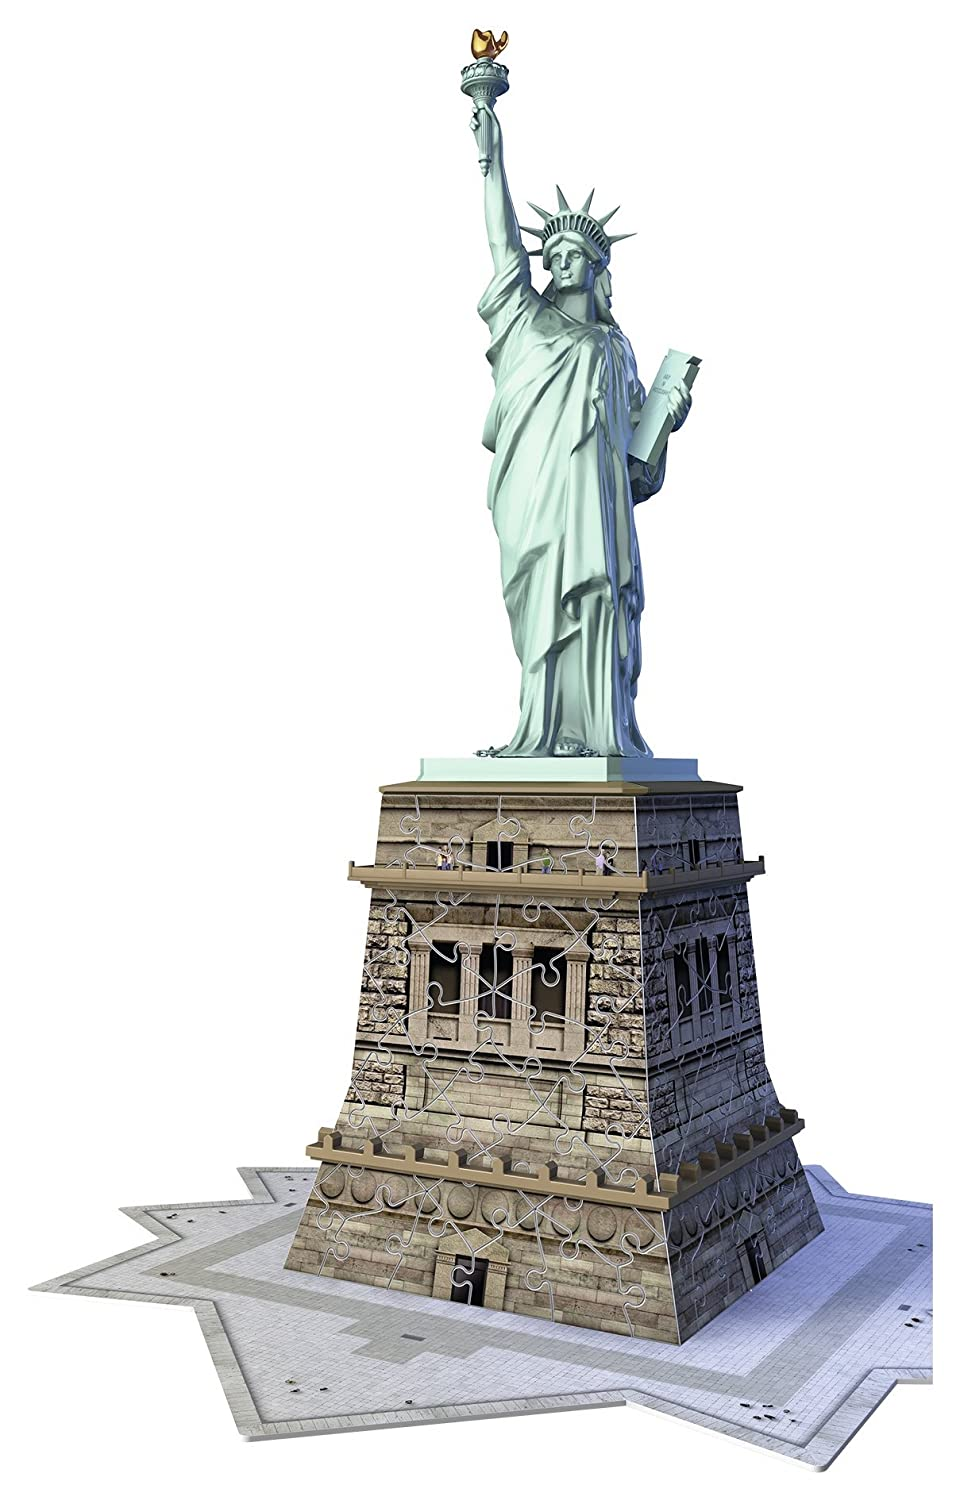 Ravensburger Statue of Liberty 108 Piece 3D Jigsaw Puzzle for Kids and Adults - Easy Click Technology Means Pieces Fit Together Perfectly 12584